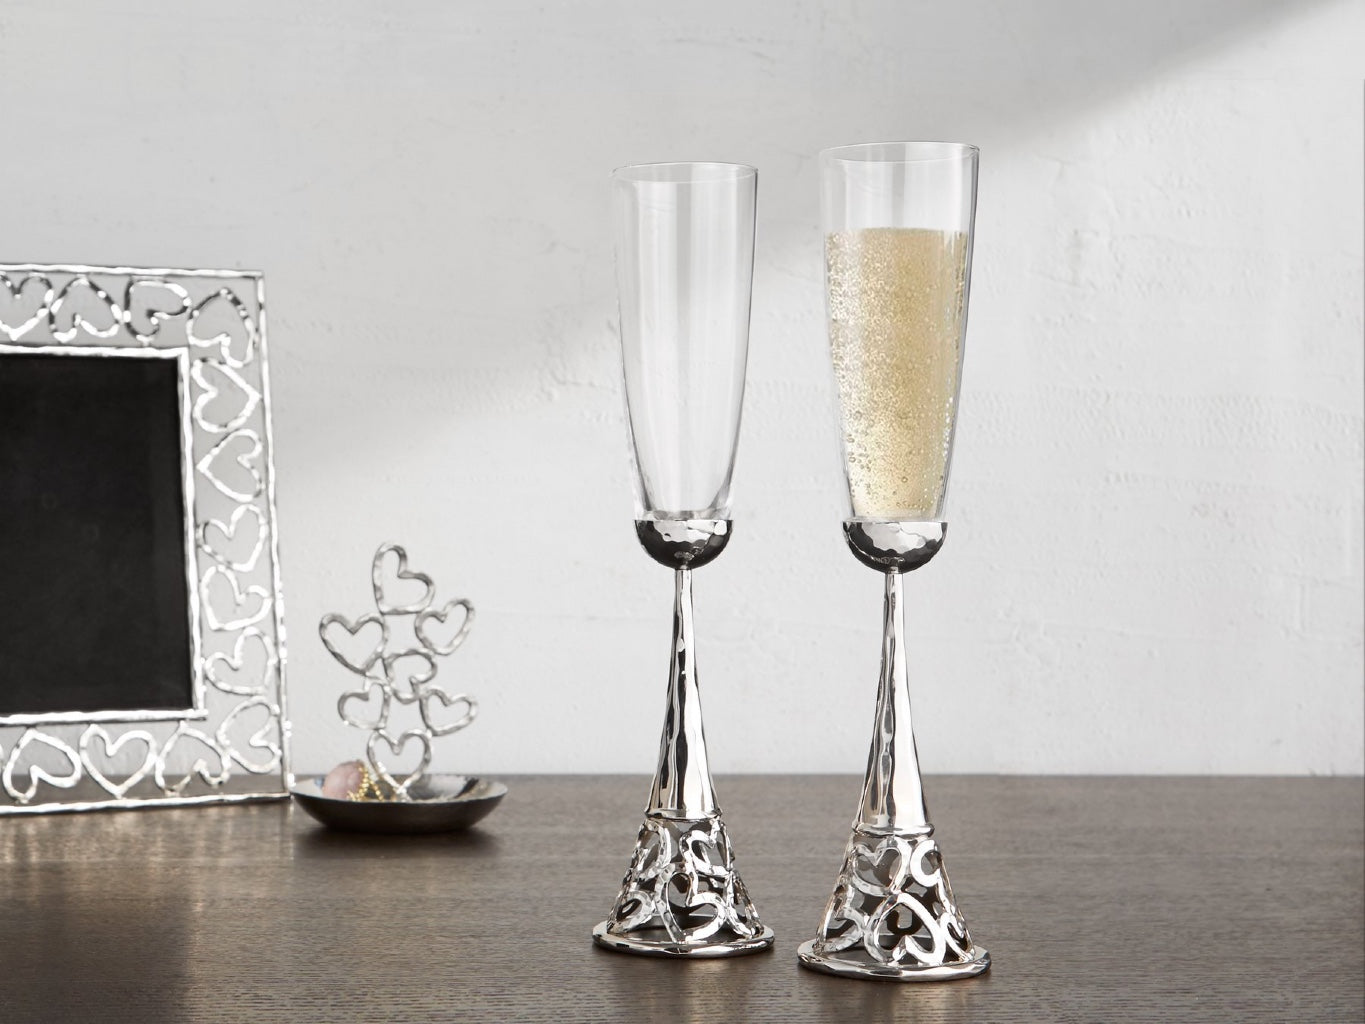 Two toasting flutes with a silver vase, designed with heart shape on the bottom, a picture frame with the same hearts shape and silver finish in the background, and a small sculpture with stacking little hearts.